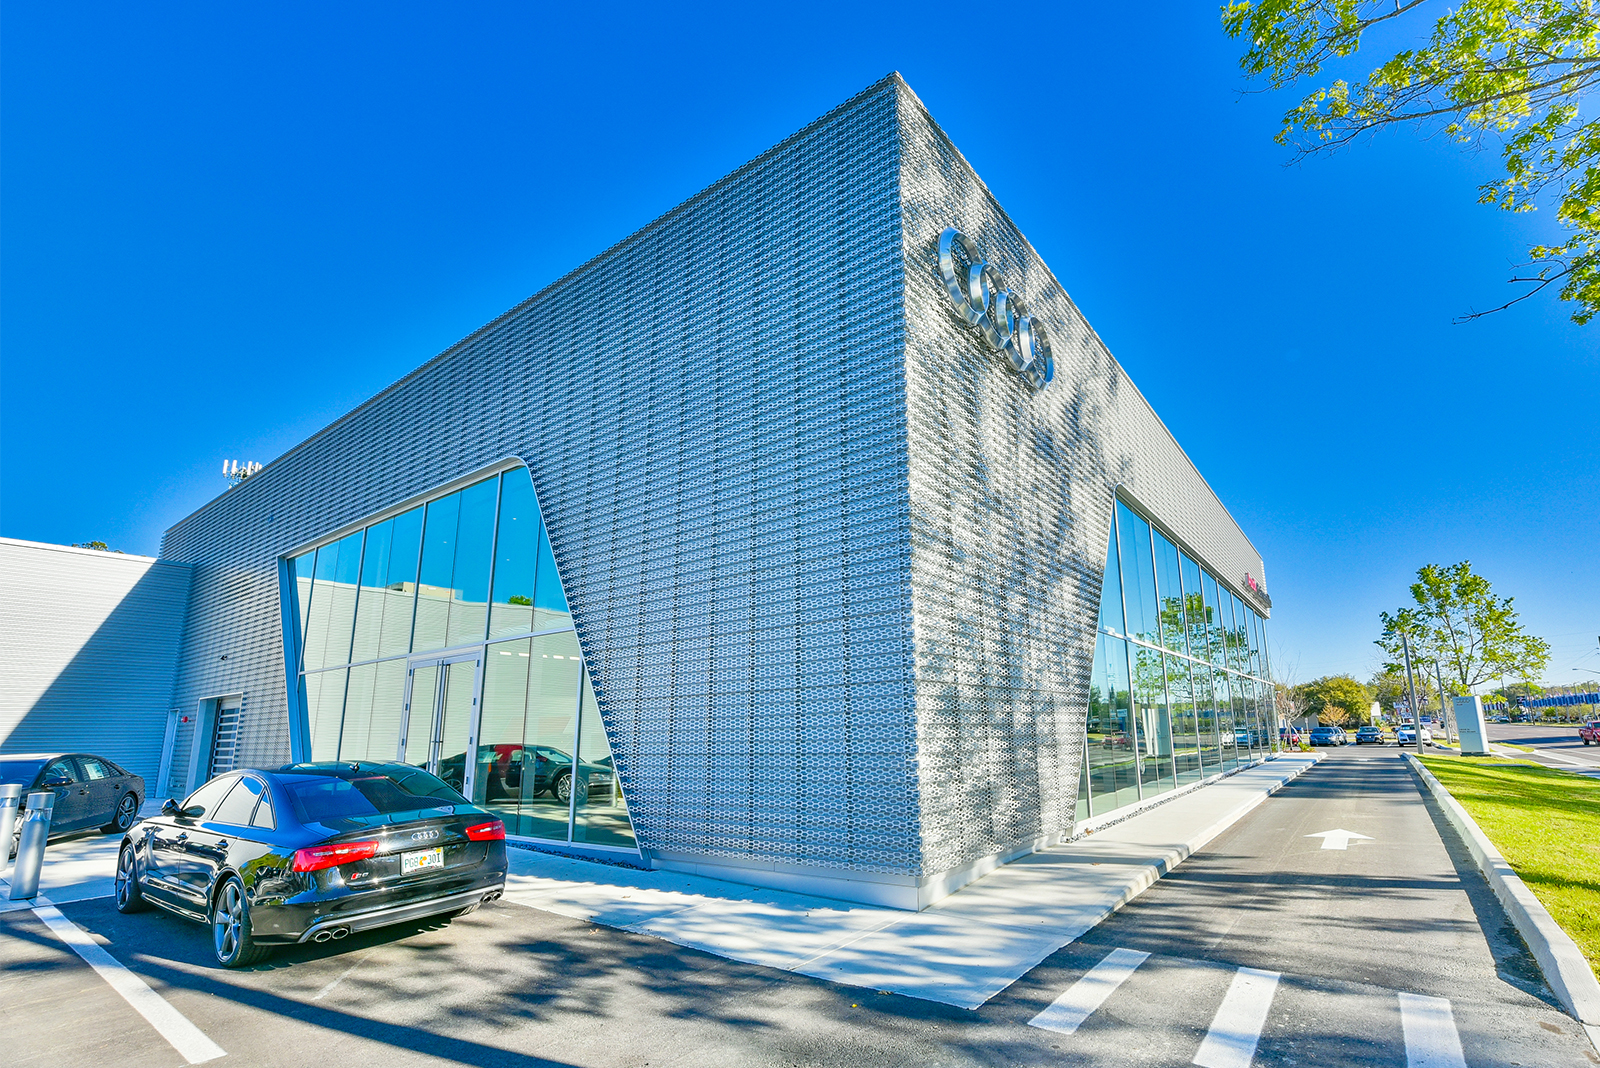 Front of the dealership with textured metal mesh facade